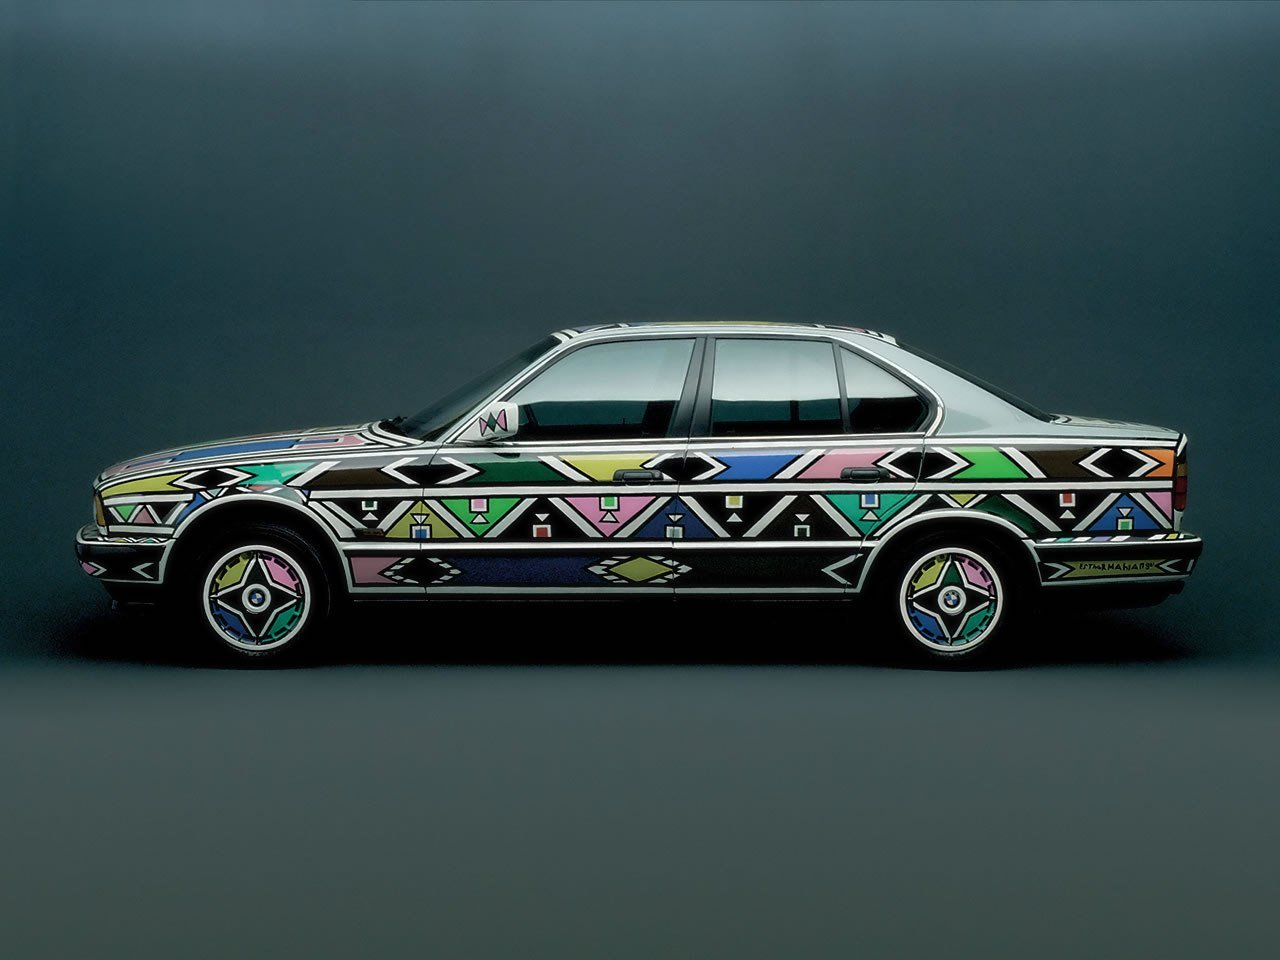 Latest Bmw Art Car 12 Esther Mahlangu South Africa 1991 Bmw Free Download